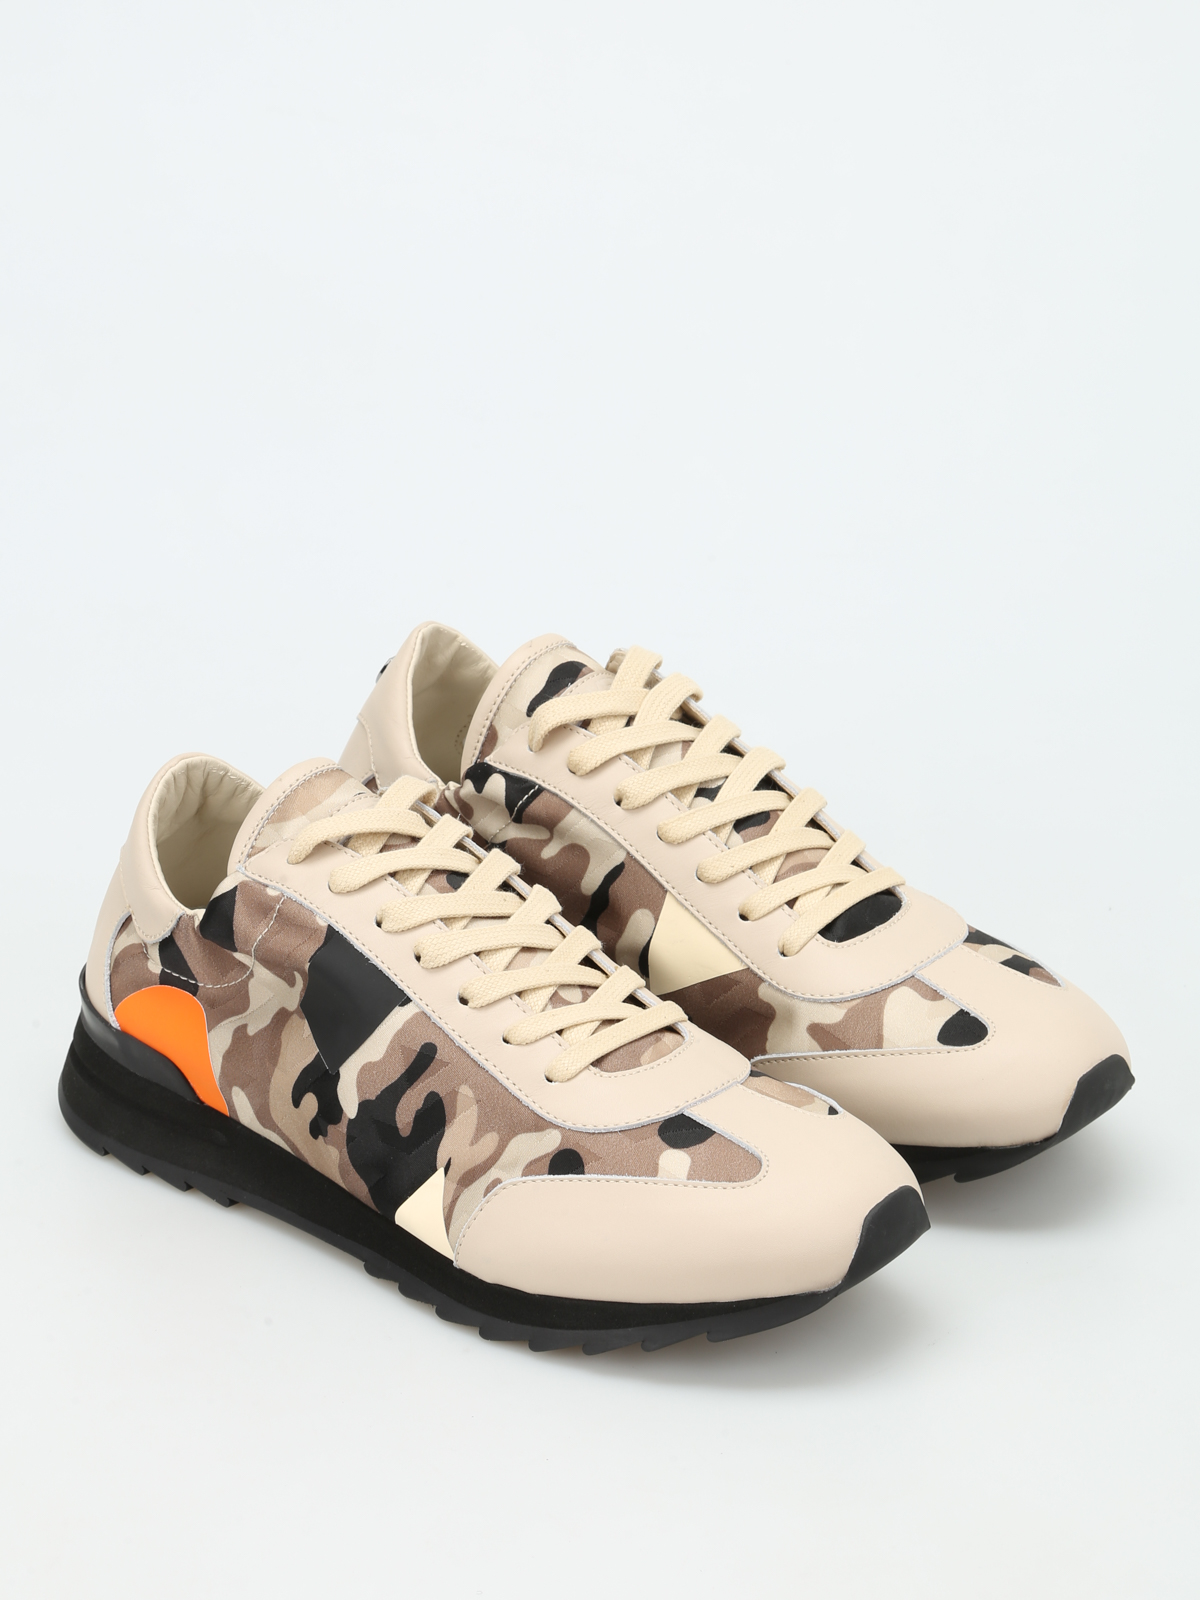 Philippe model Toujours sneakers ebIt0TFf